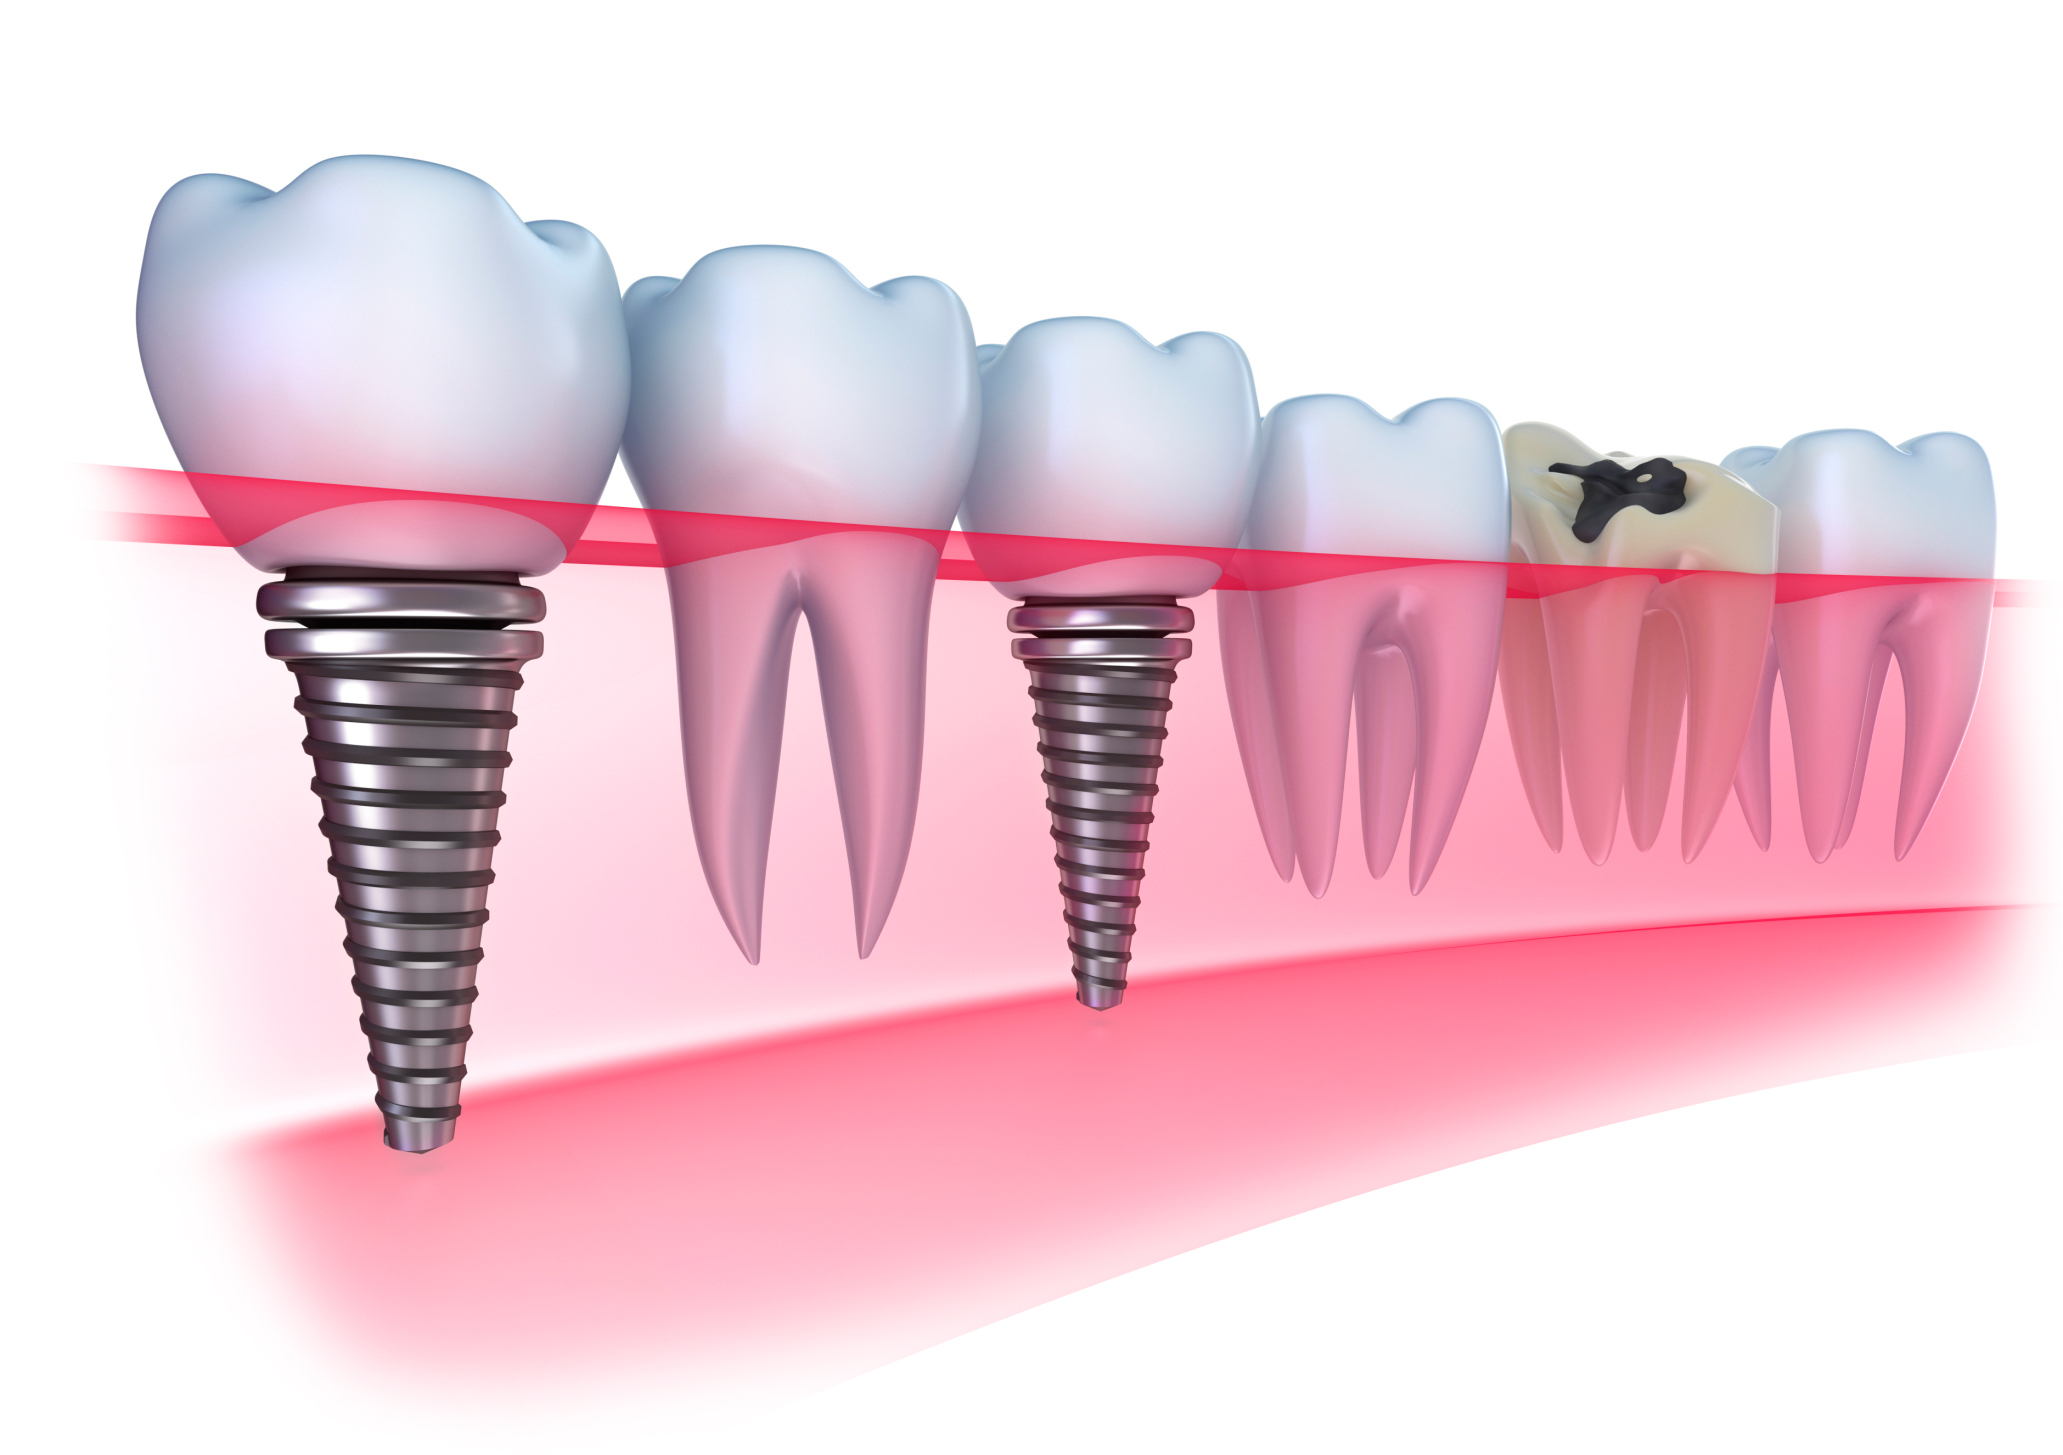 dental-implants-illustration1